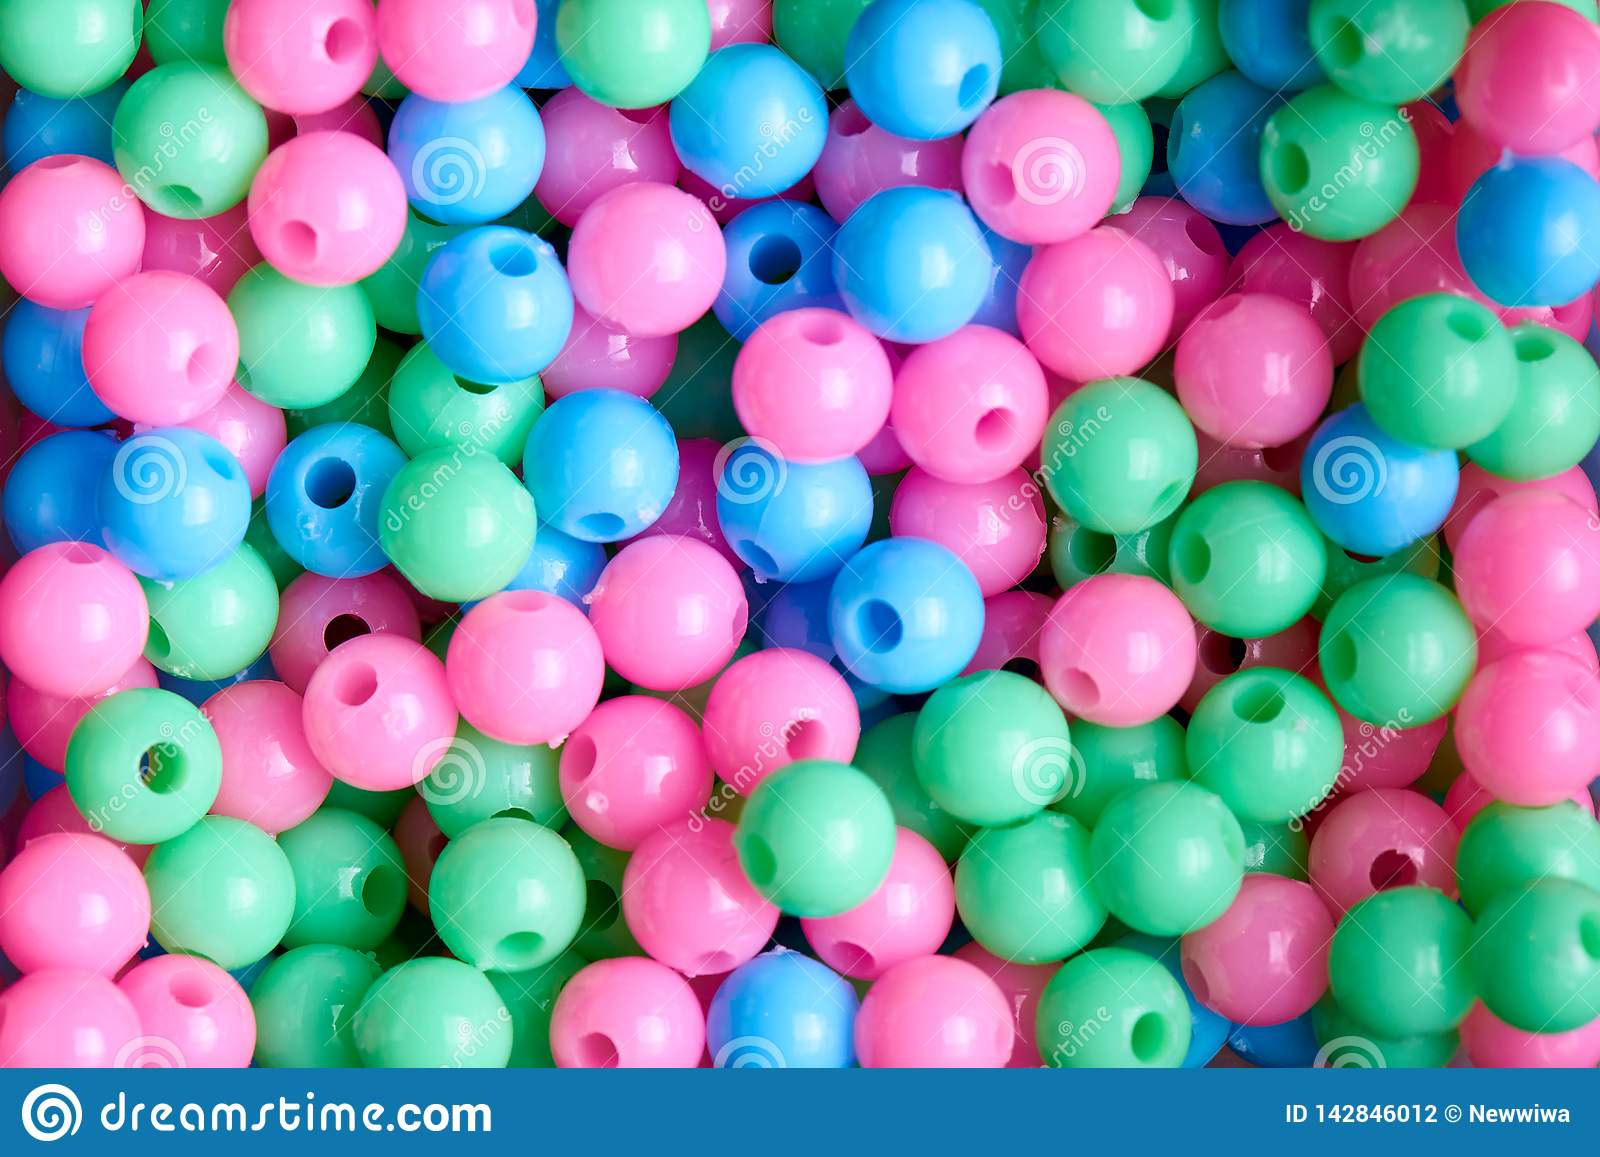 Background of colored beads close-up